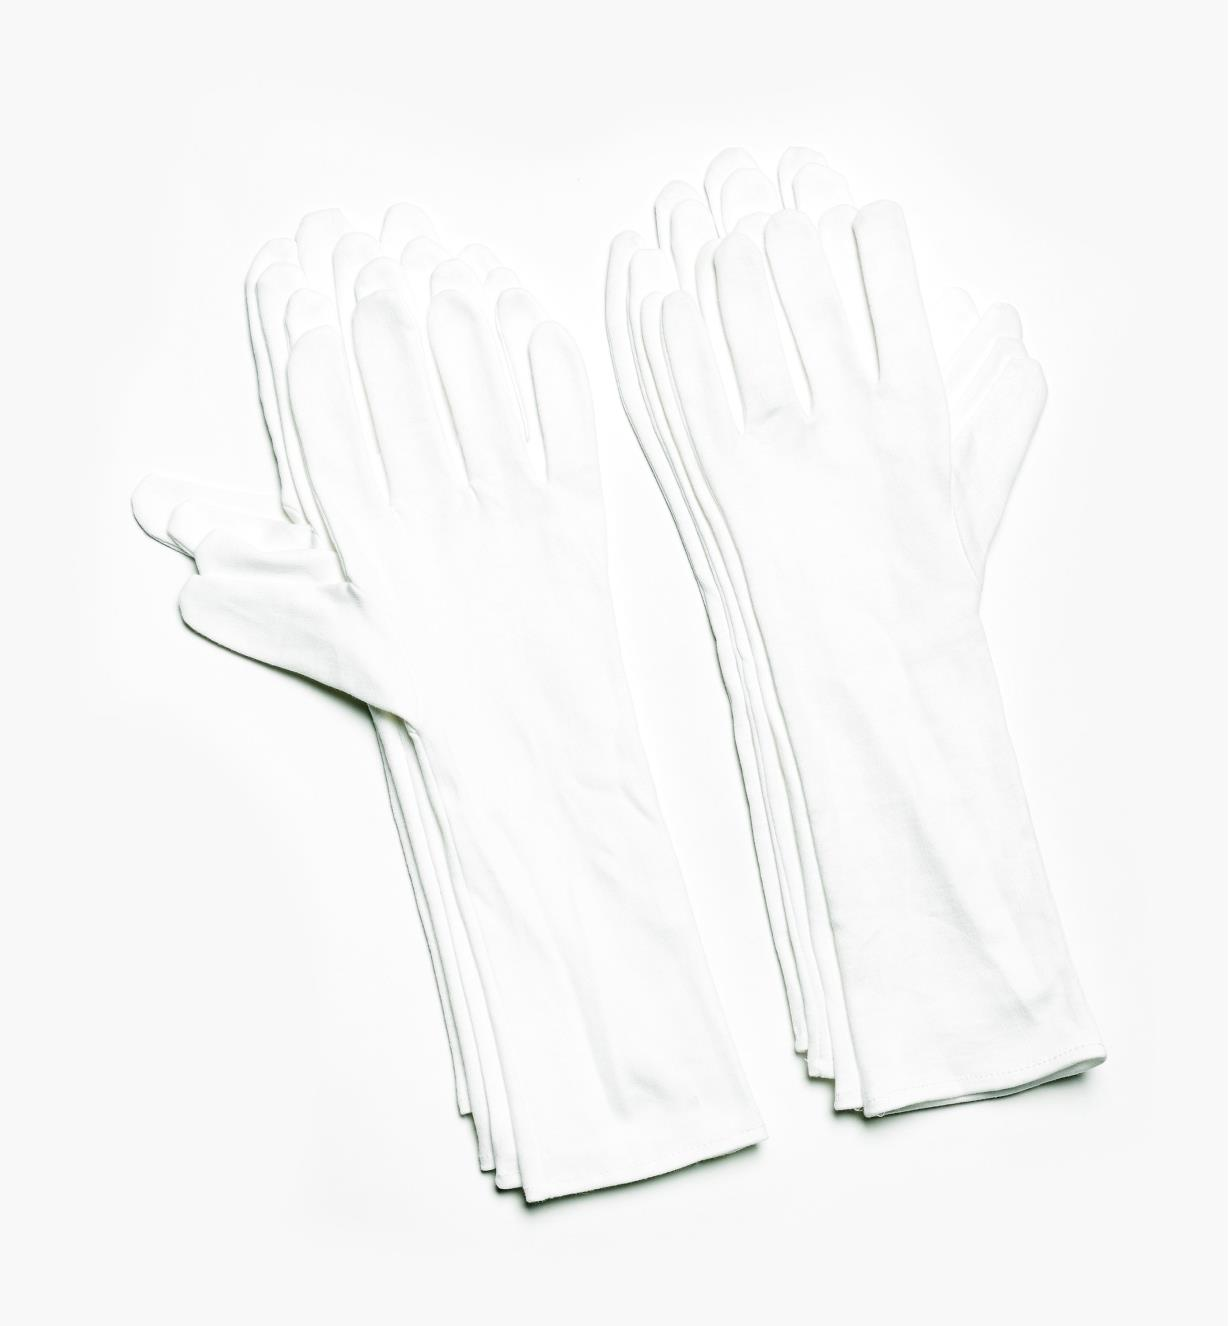 09A2057 - Small Extra-Long Cotton Glove Liners (size 7), pkg. of 8